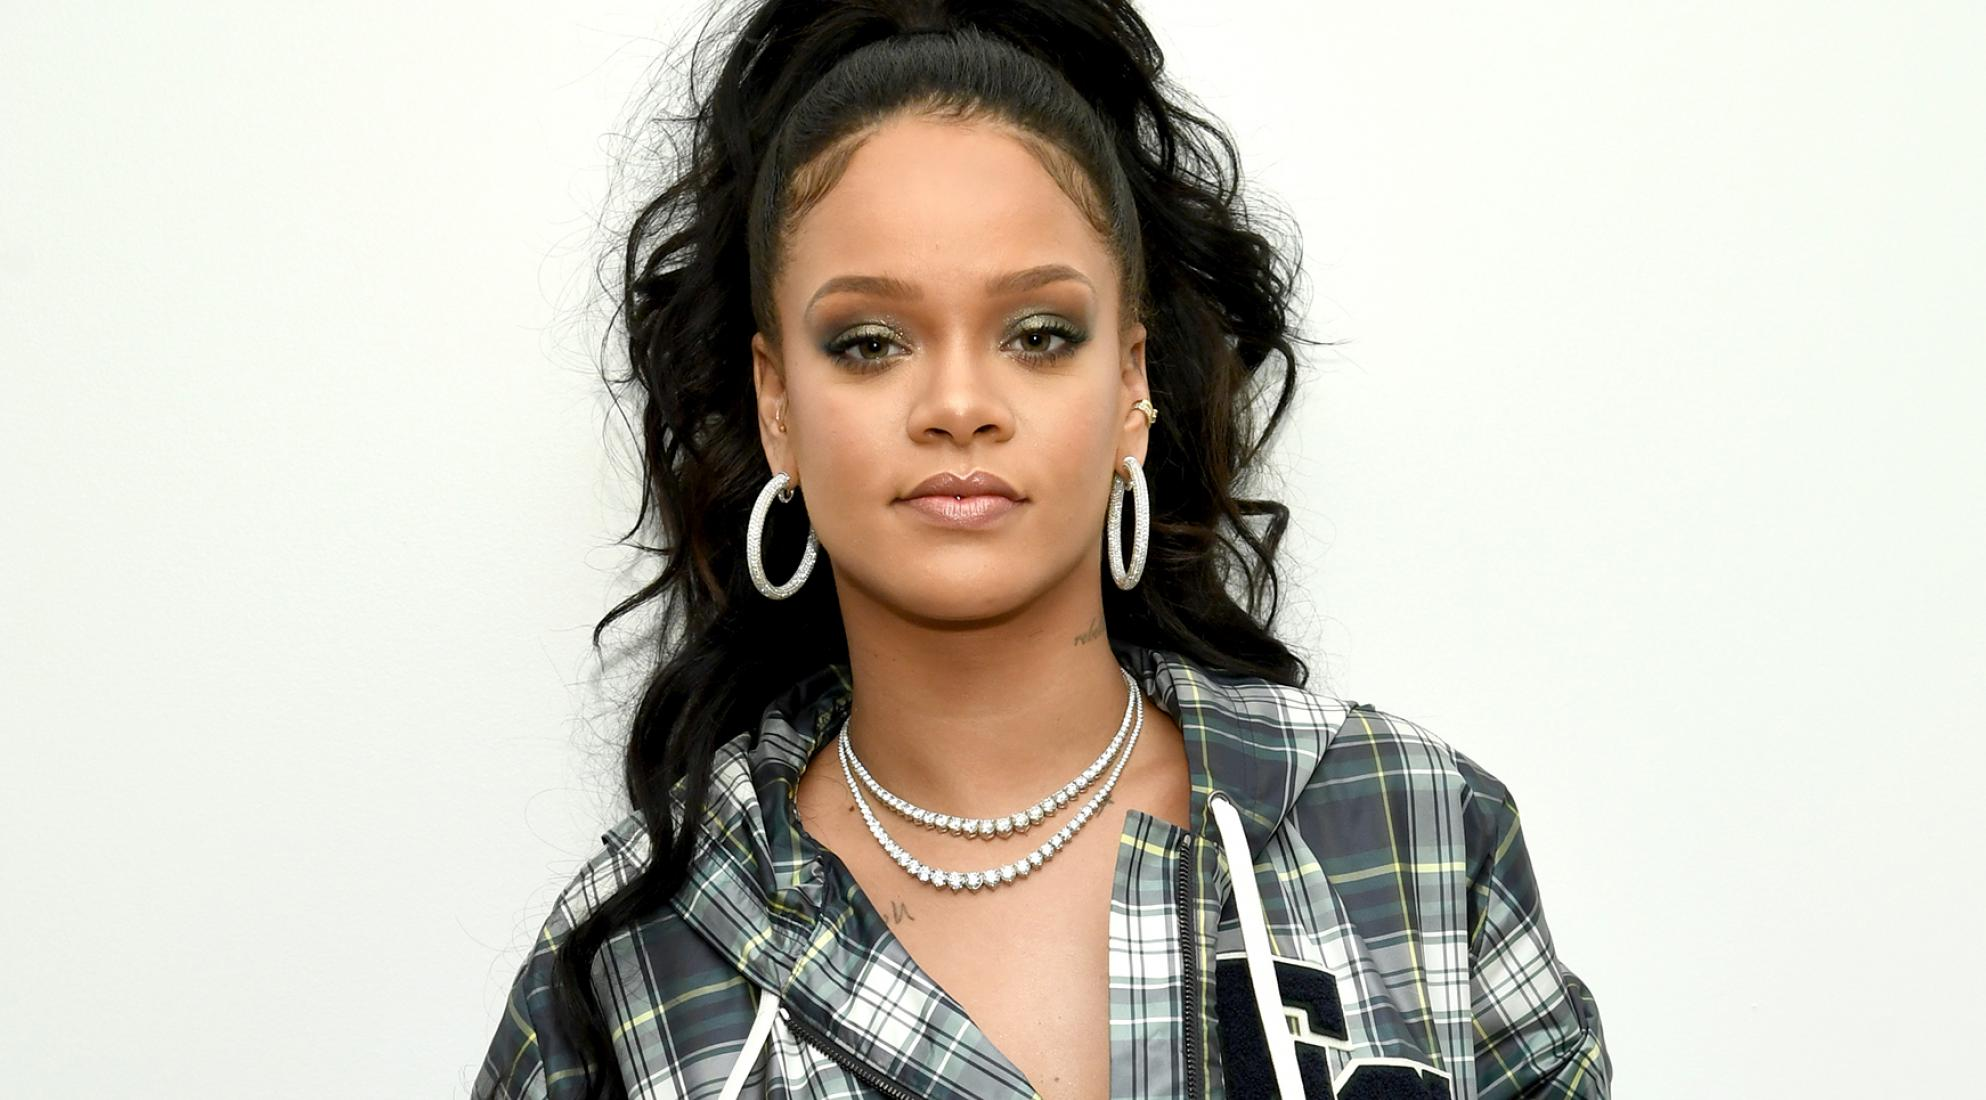 rihanna-finally-gives-fans-a-behind-the-scenes-look-of-the-new-album-recording-process